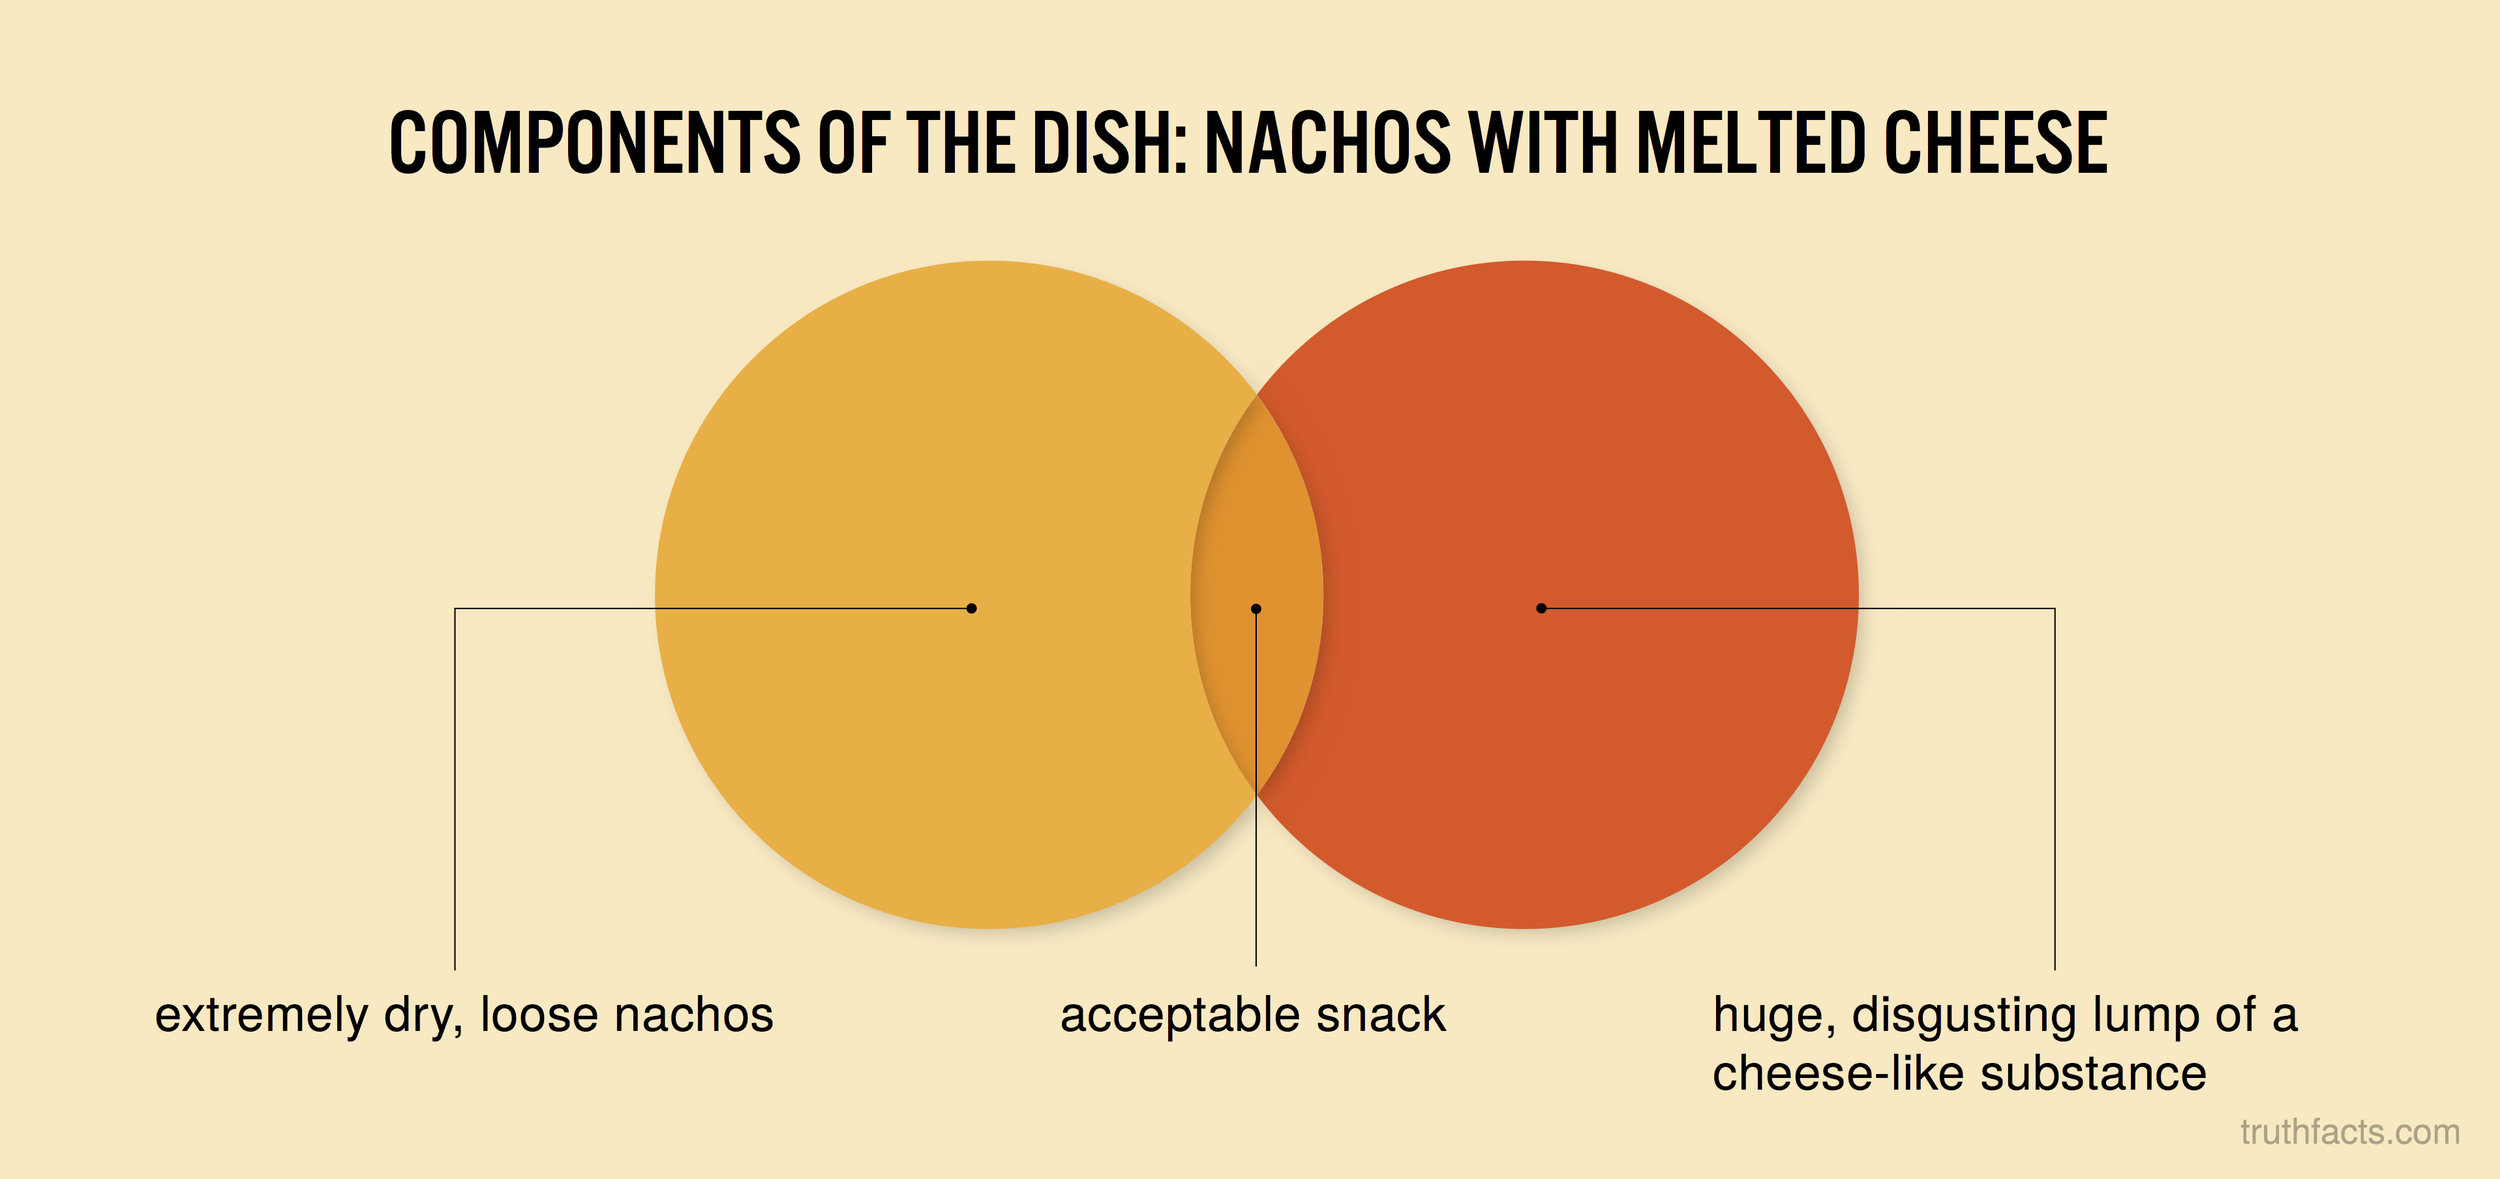 Components of the dish: Nashos with melted cheese